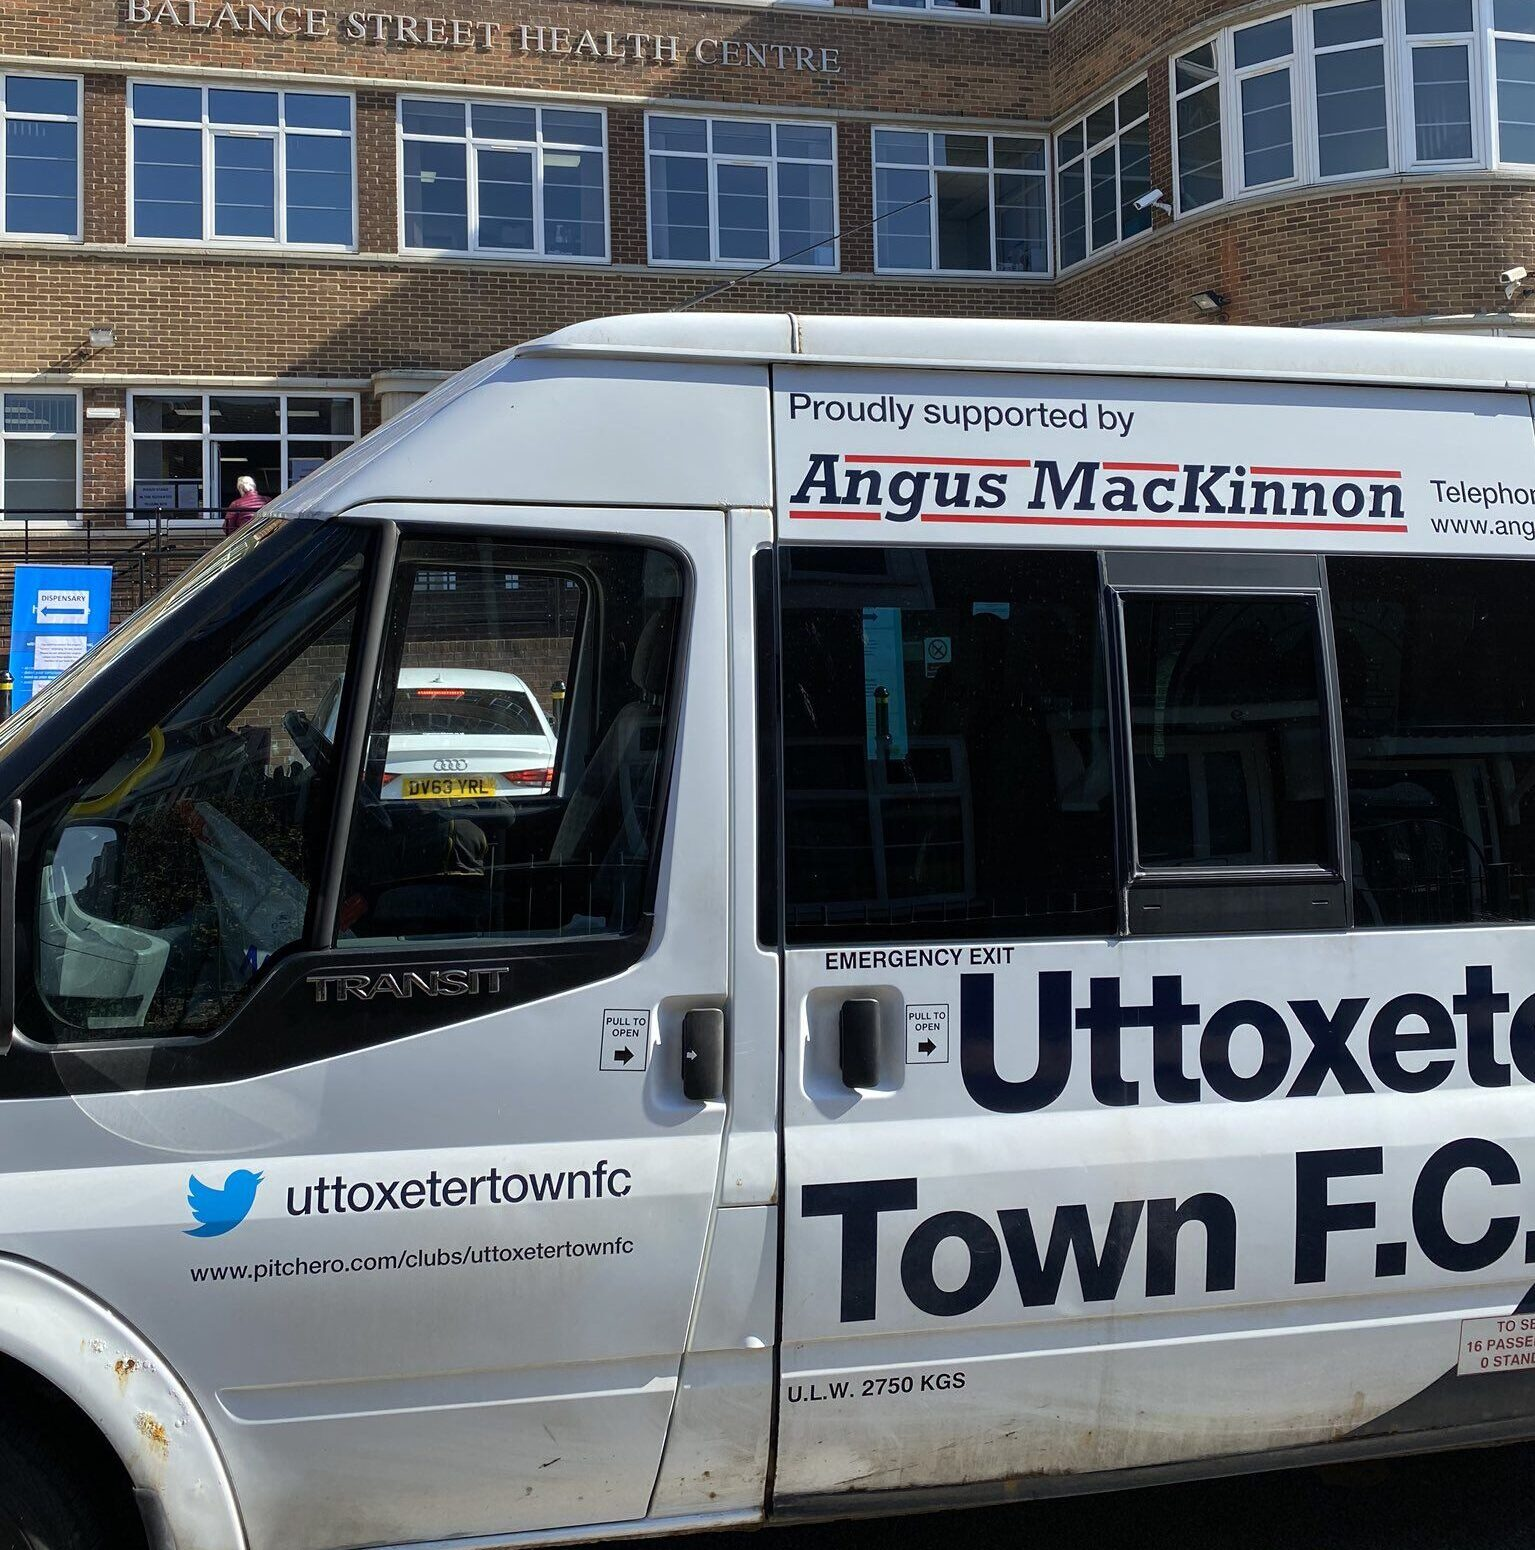 Uttoxeter Town have been delivering prescriptions in conjunction with Balance Street Health Centre